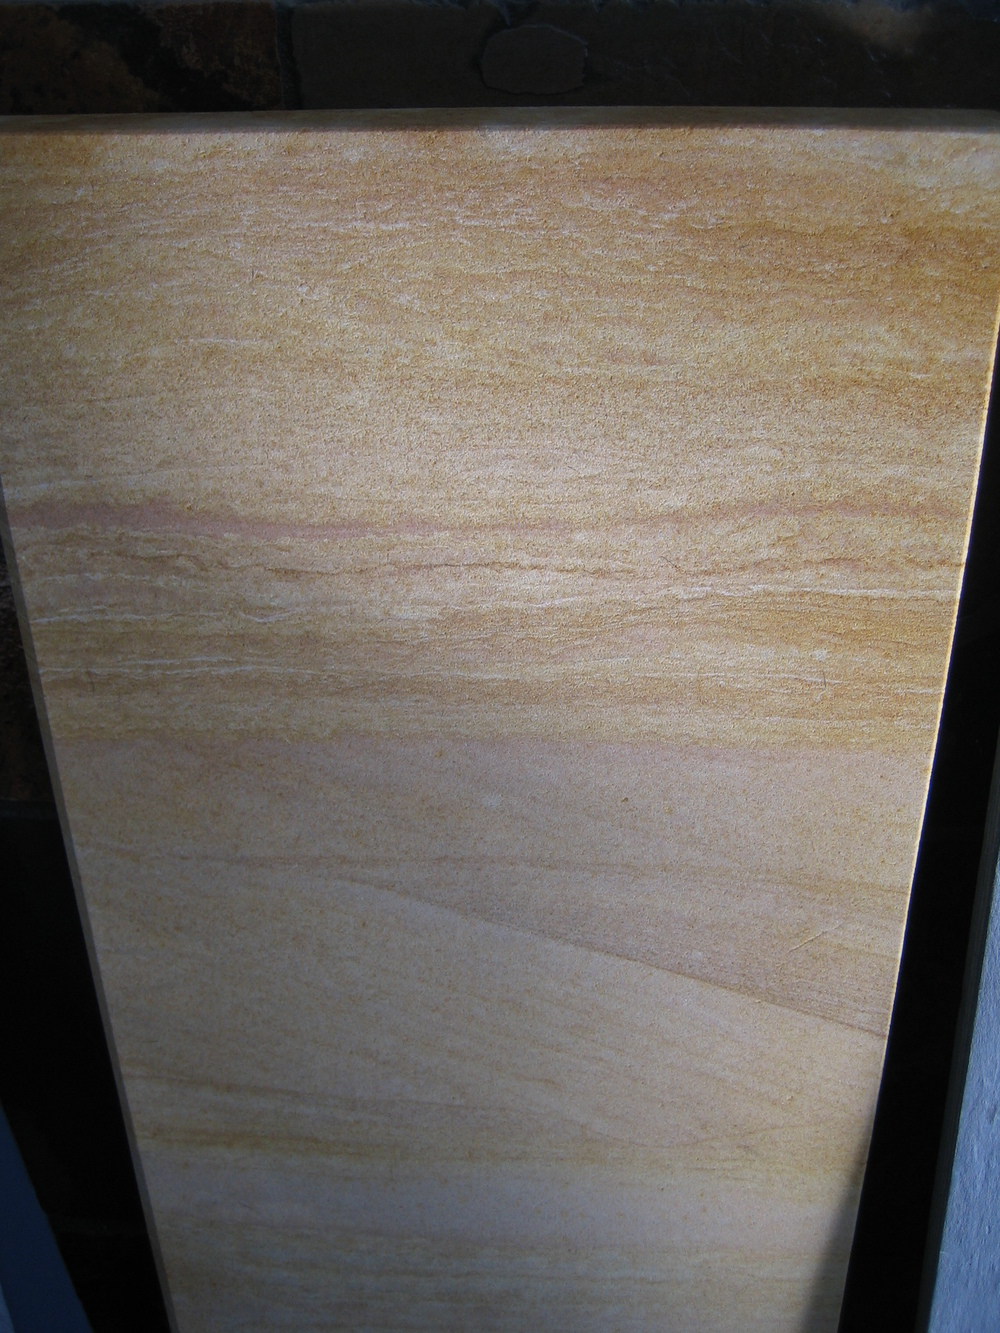 45. Woodgrain sandstone colour sample